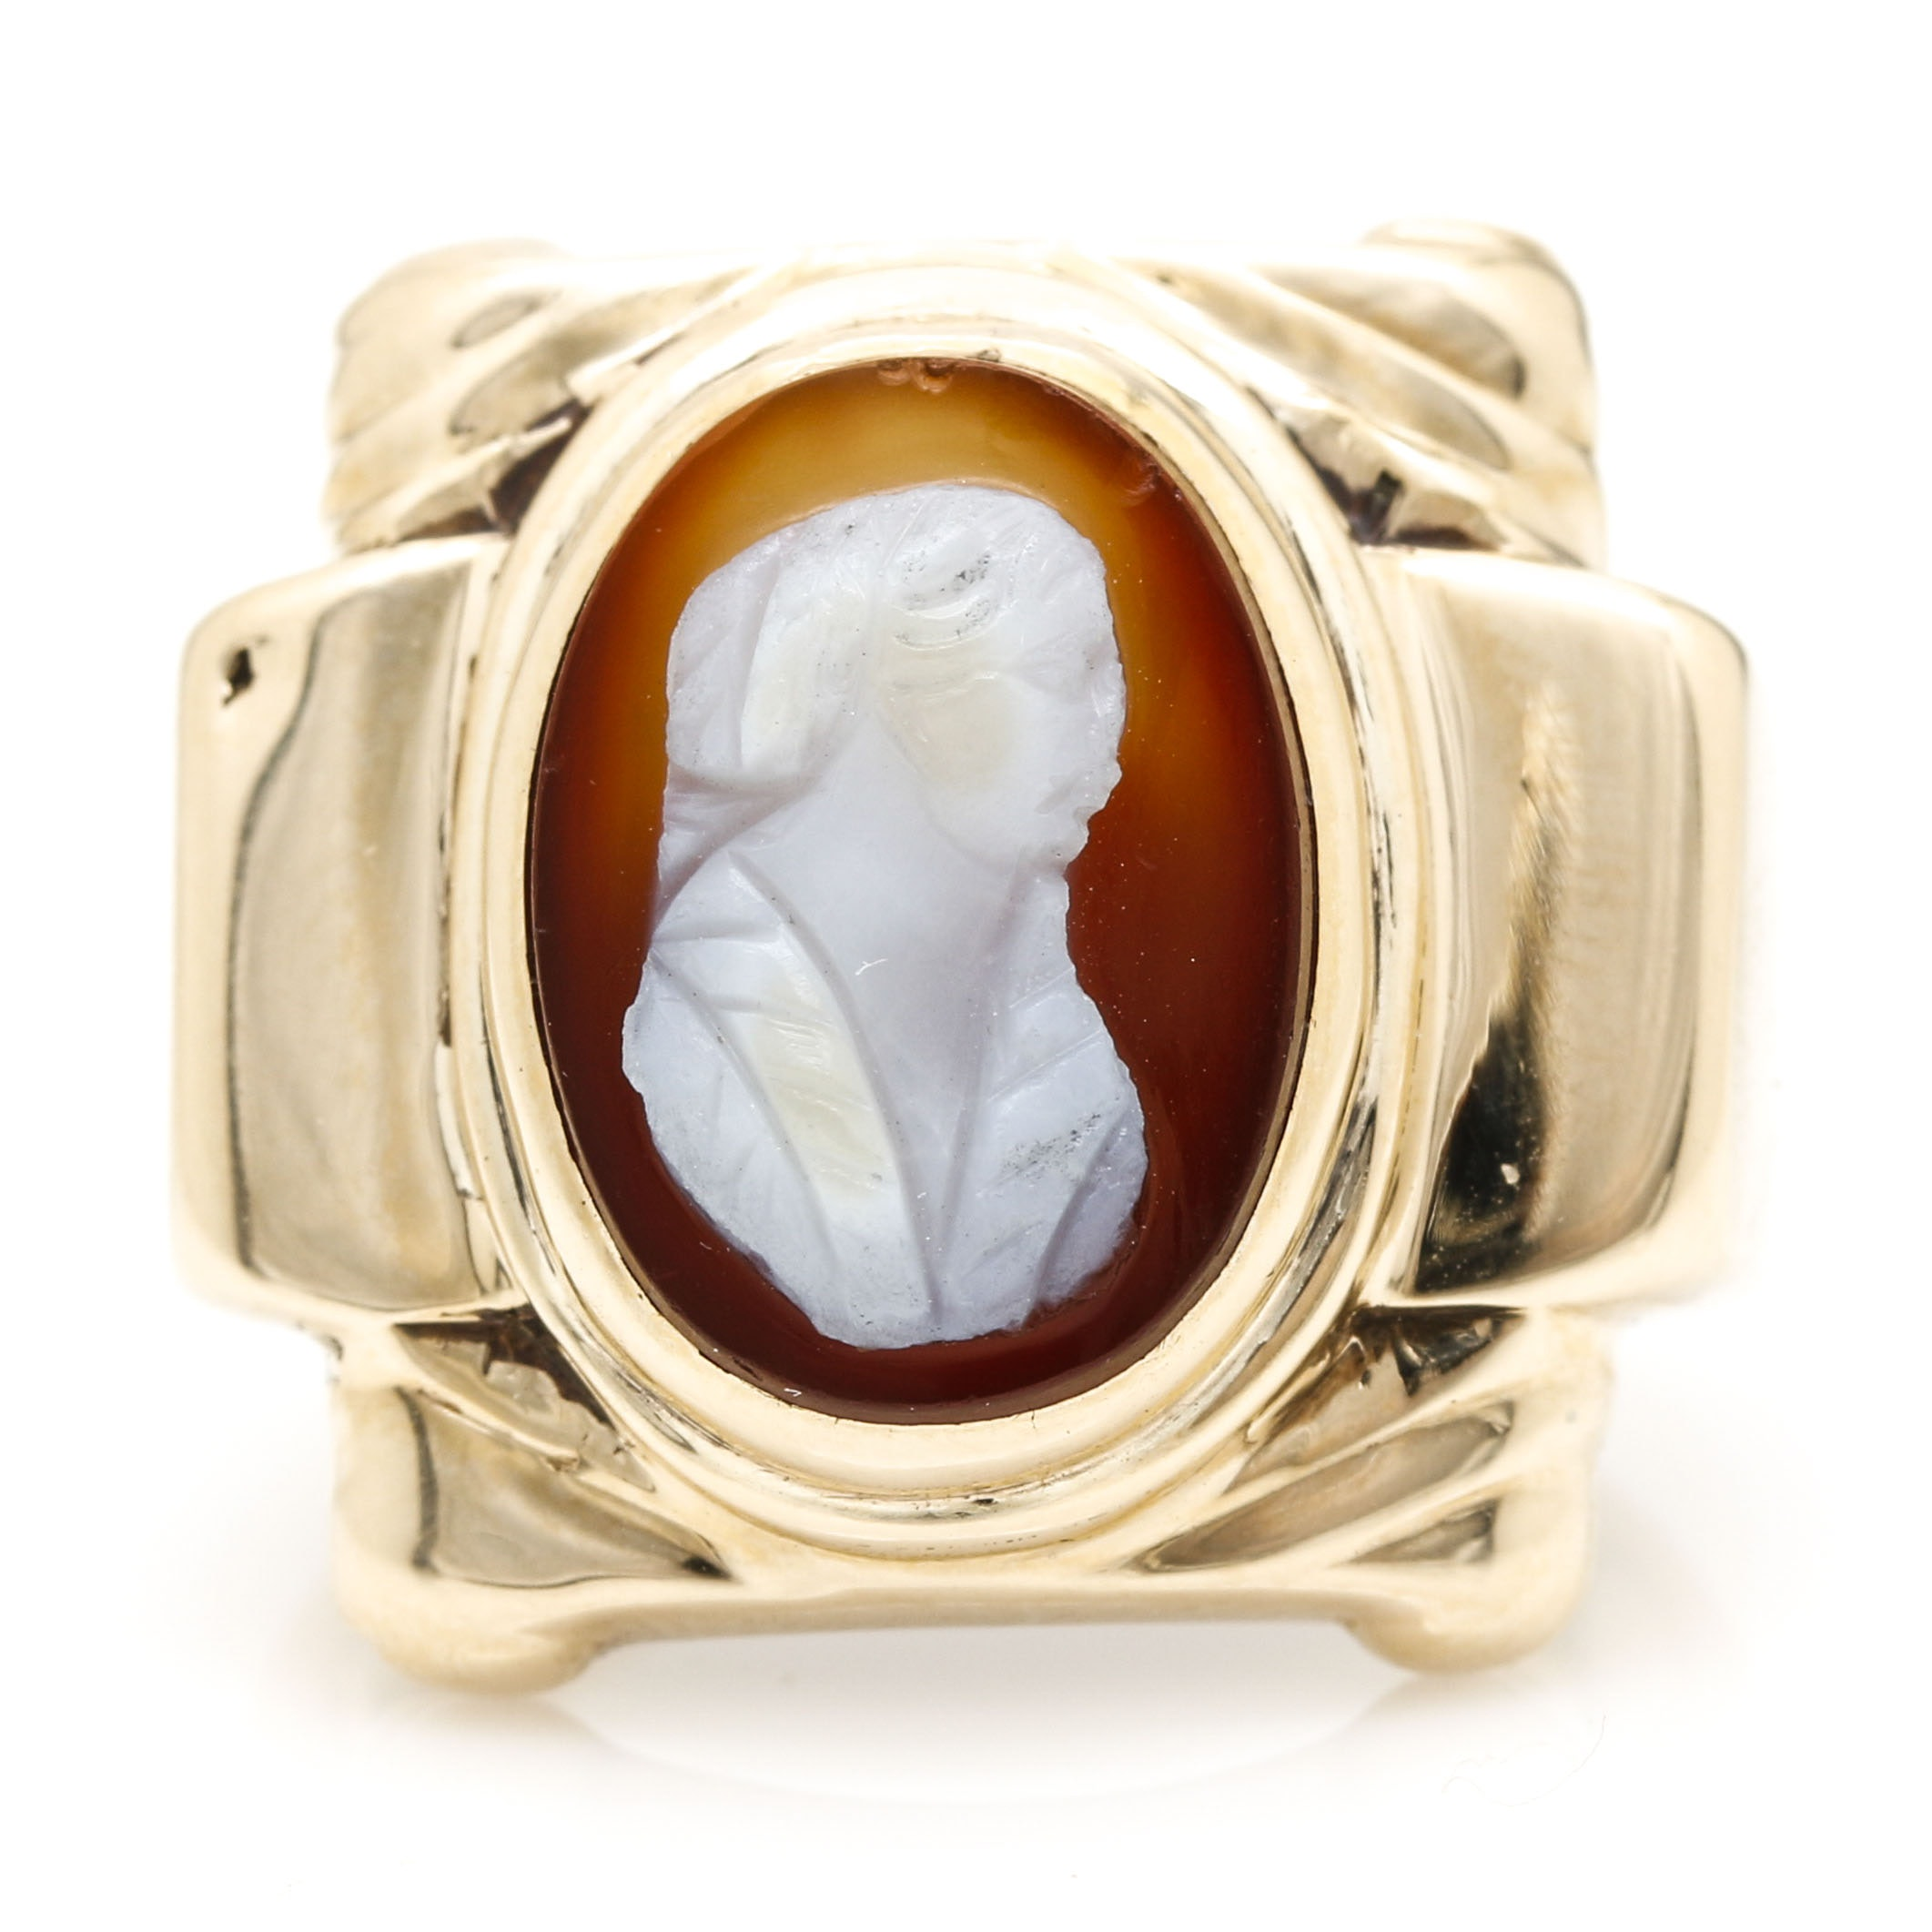 10K Yellow Gold Agate Cameo Ring